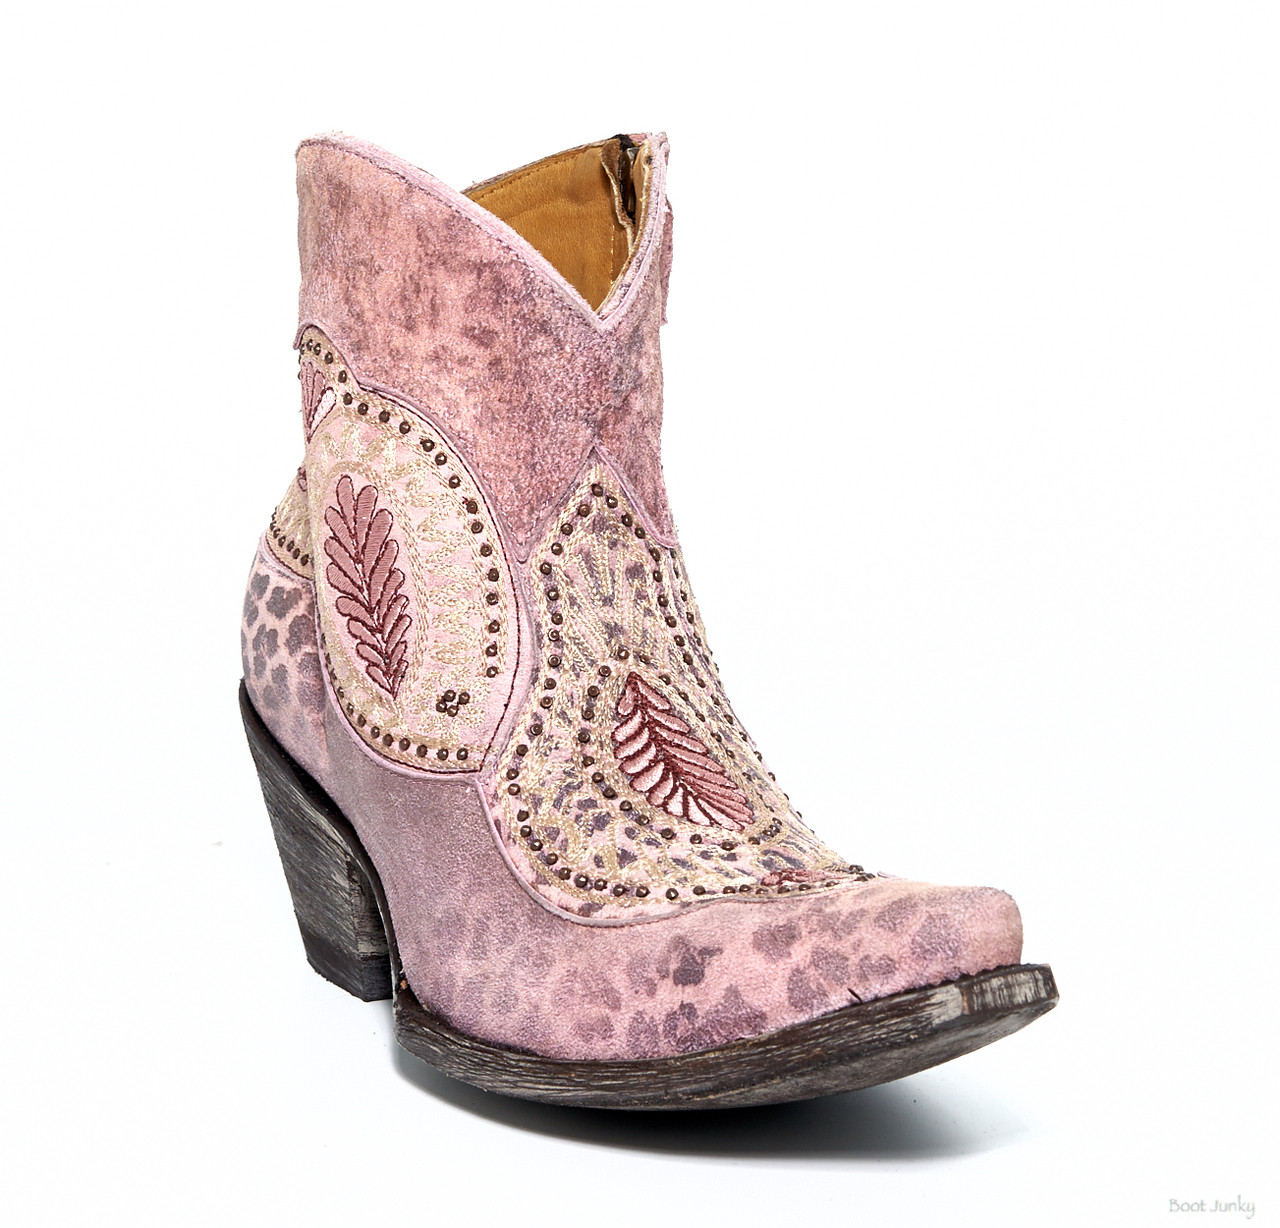 Bl2978 4 Old Gringo Bianca Pink Leopardito Embroidered Ankle Boots Detail